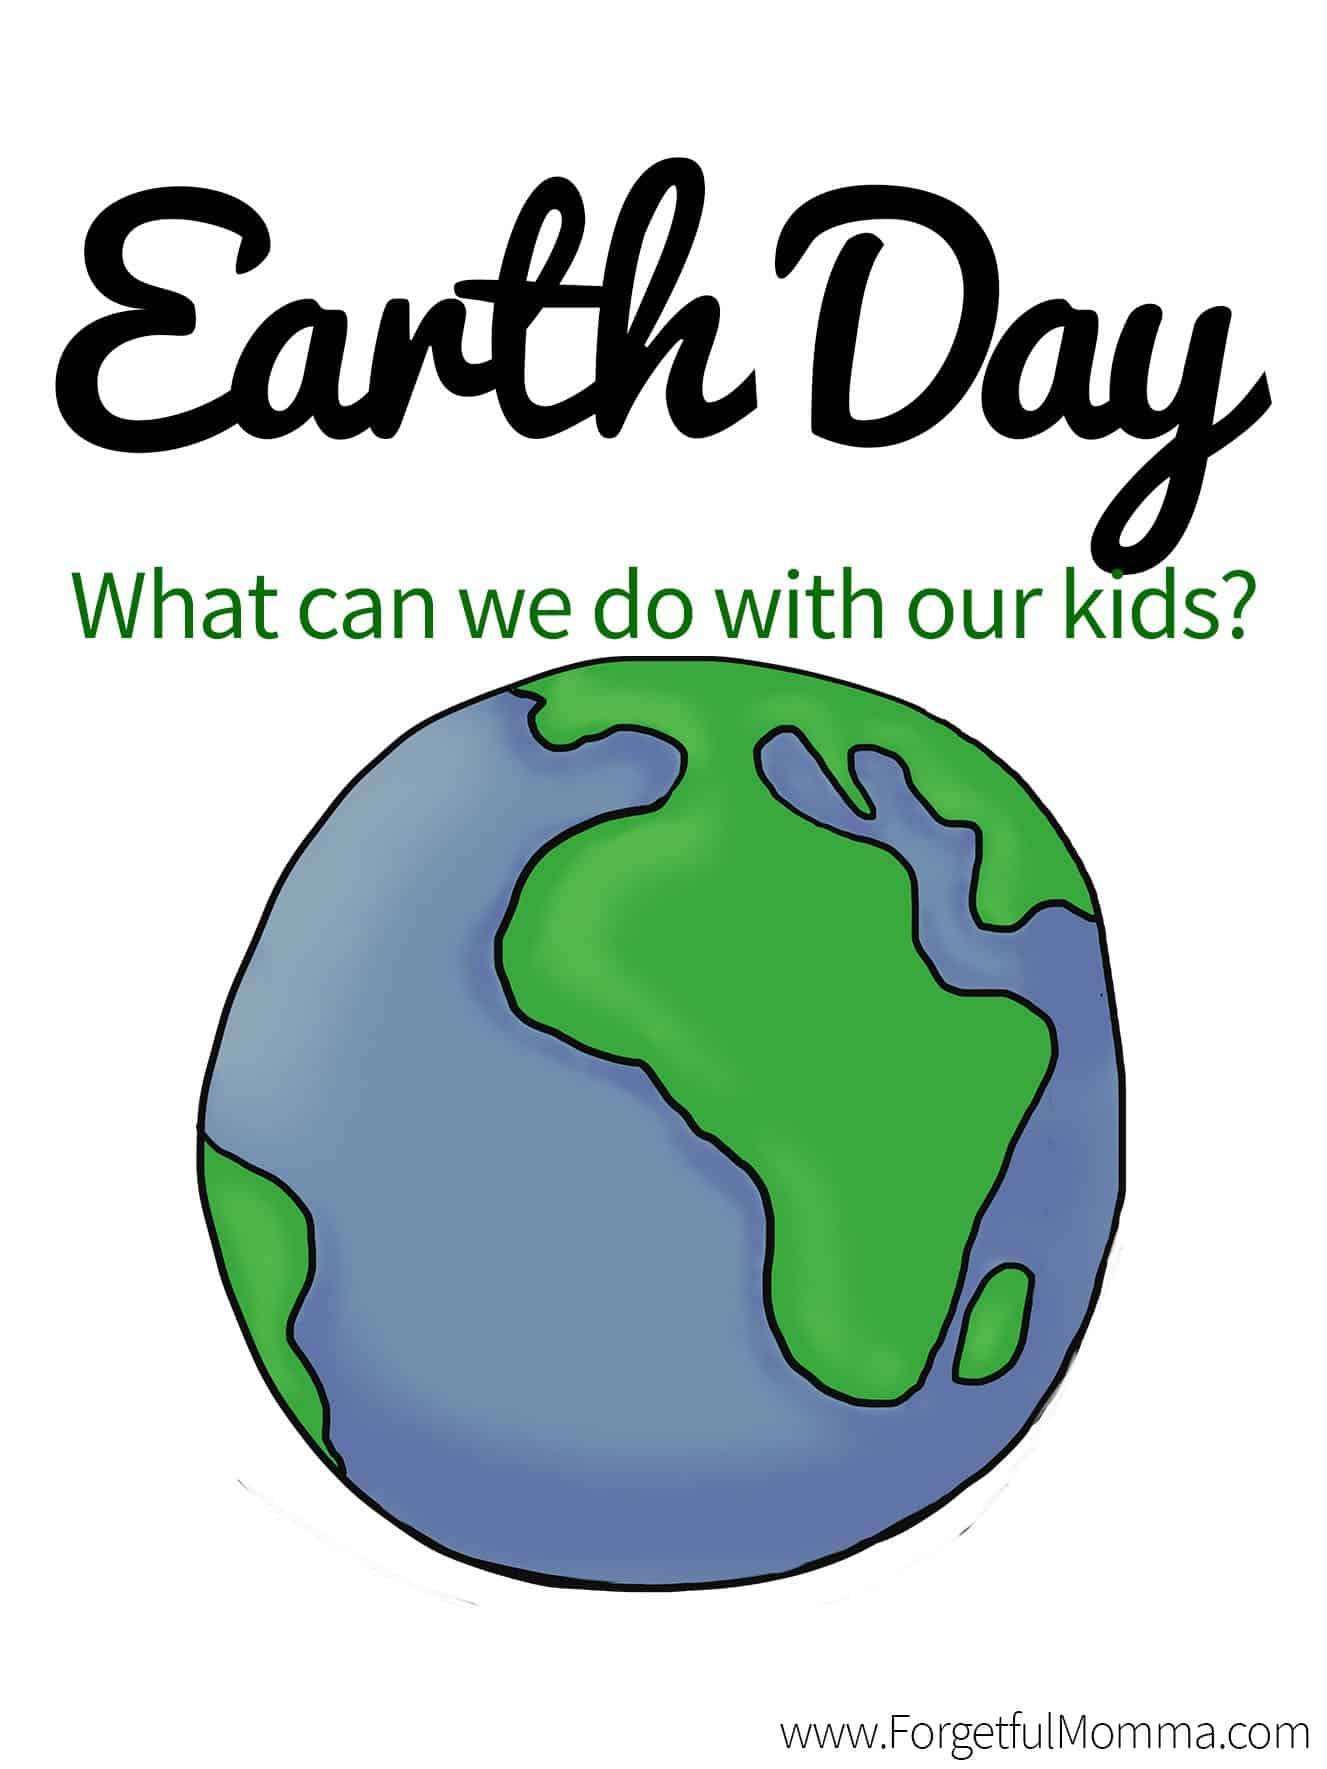 Earth Day - What Can we do with our kids